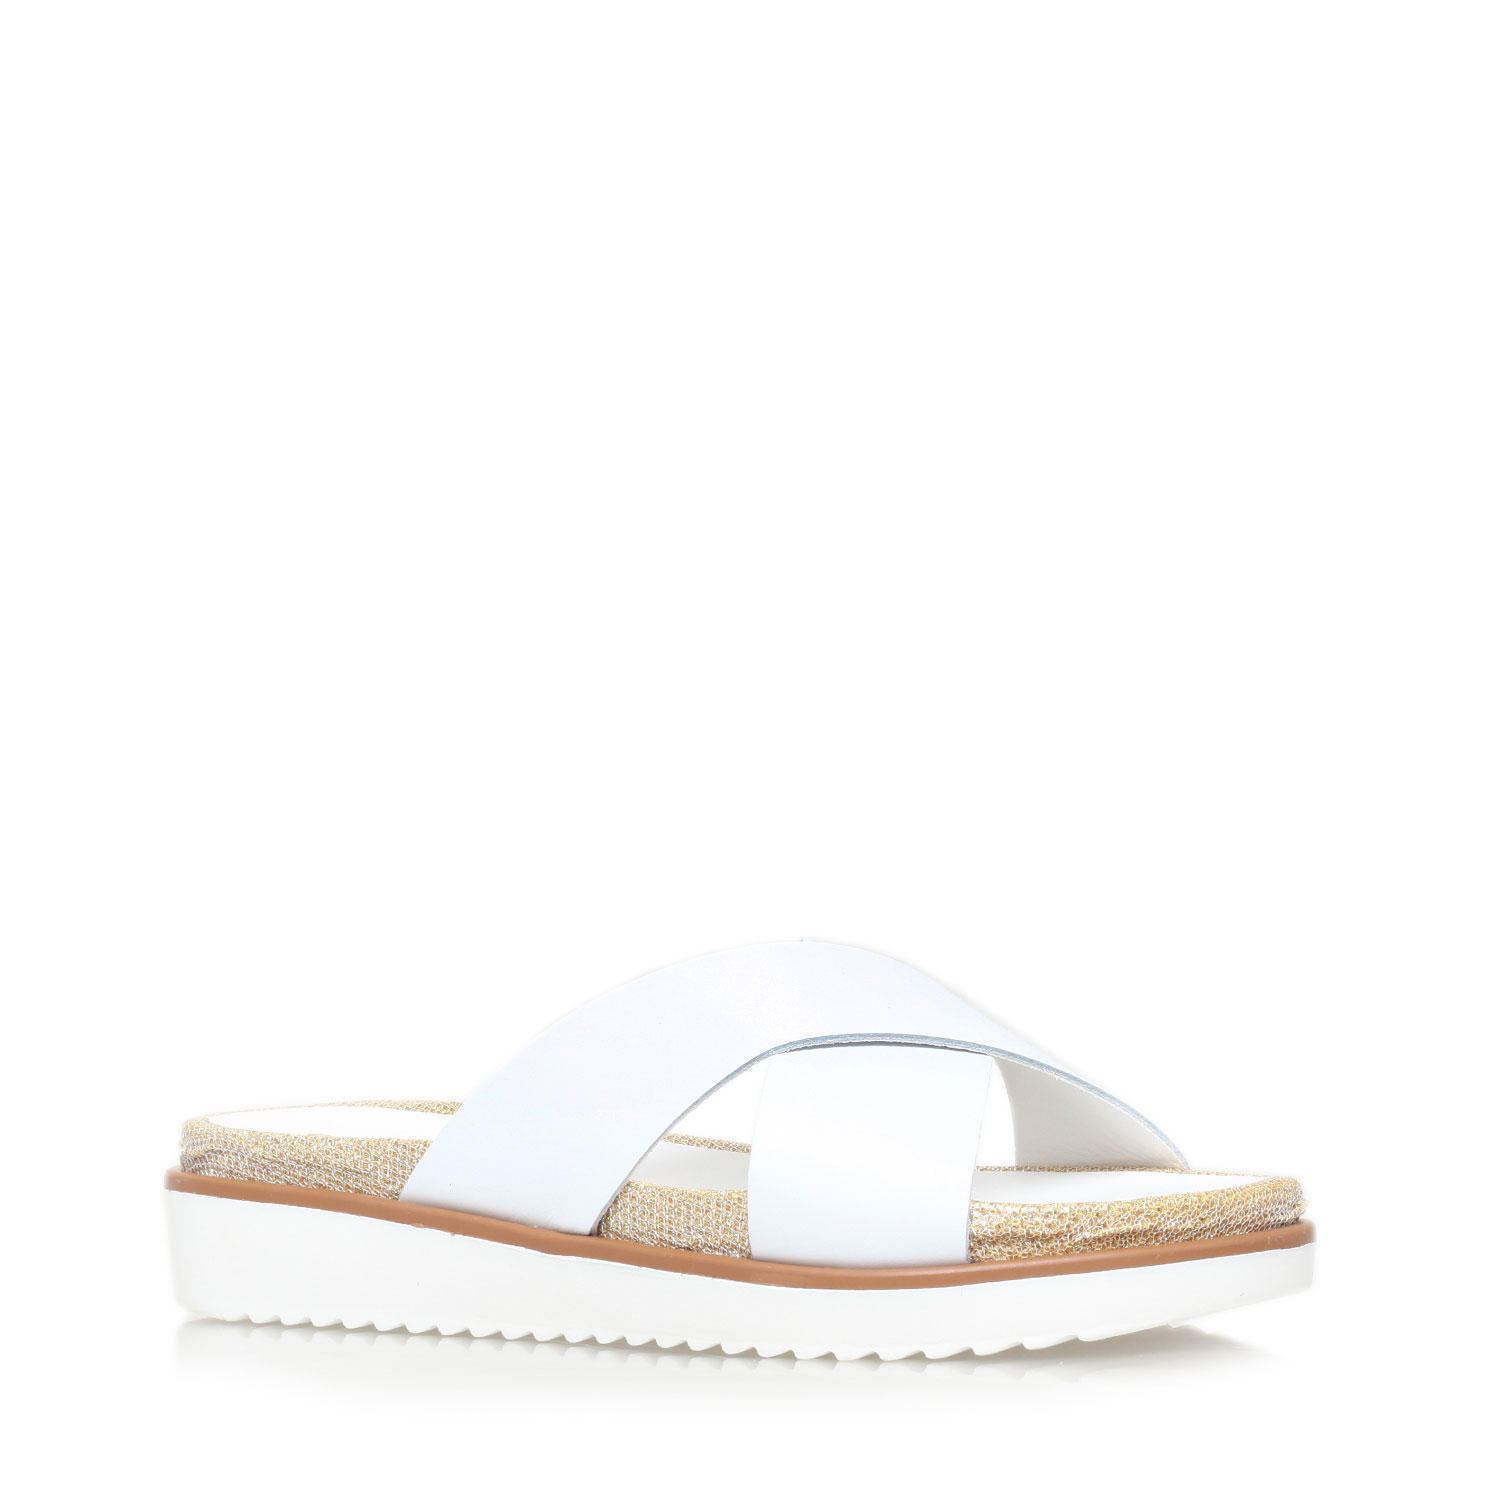 5045366879919: Kream Sandal